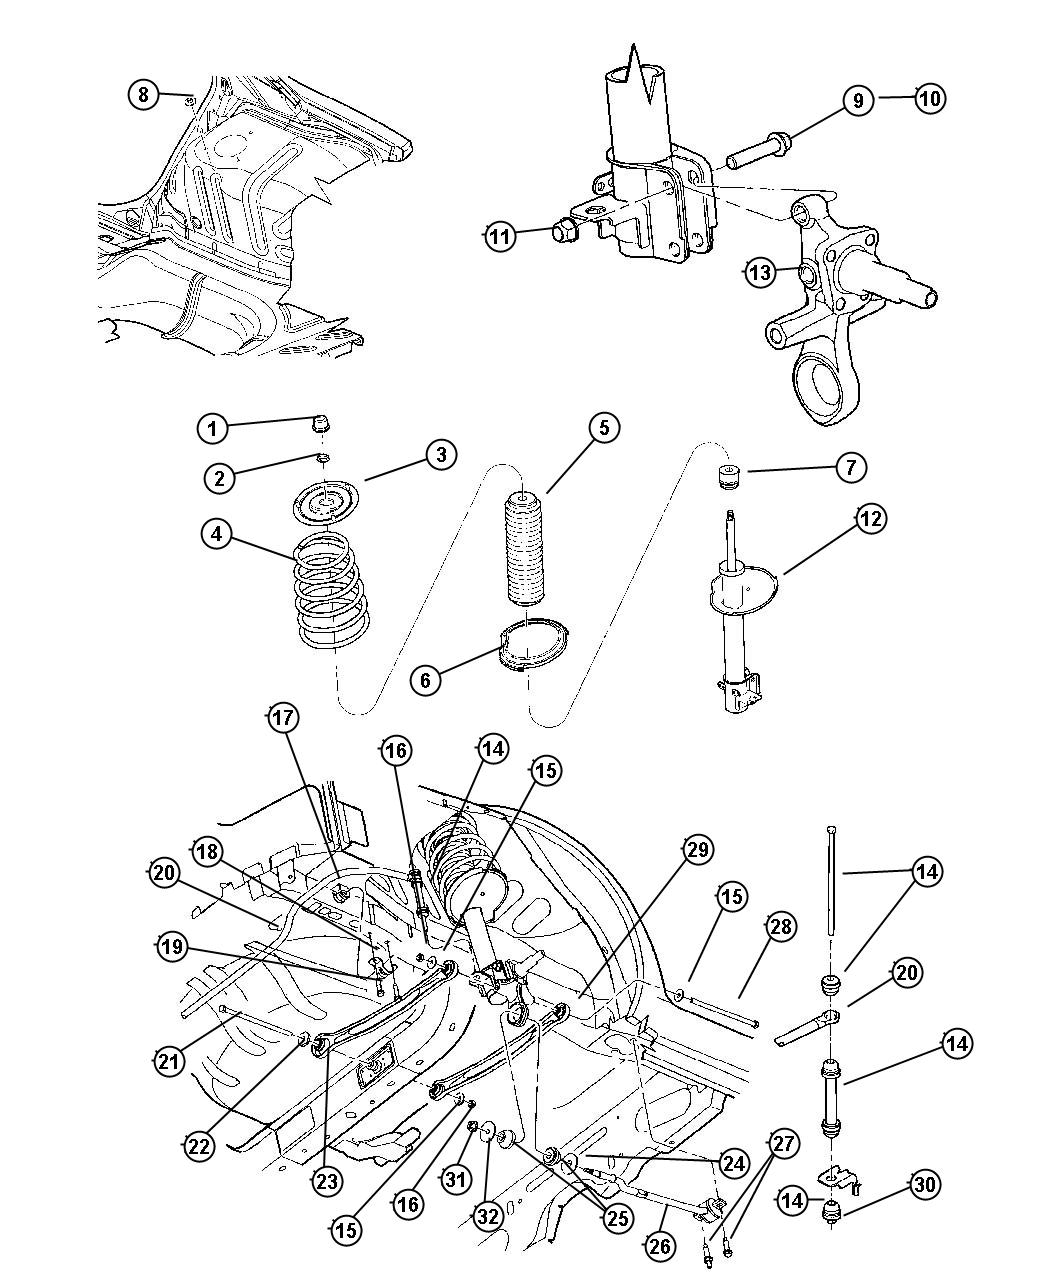 Dodge Neon Bolt Strut To Knuckle Hex Head Clevis